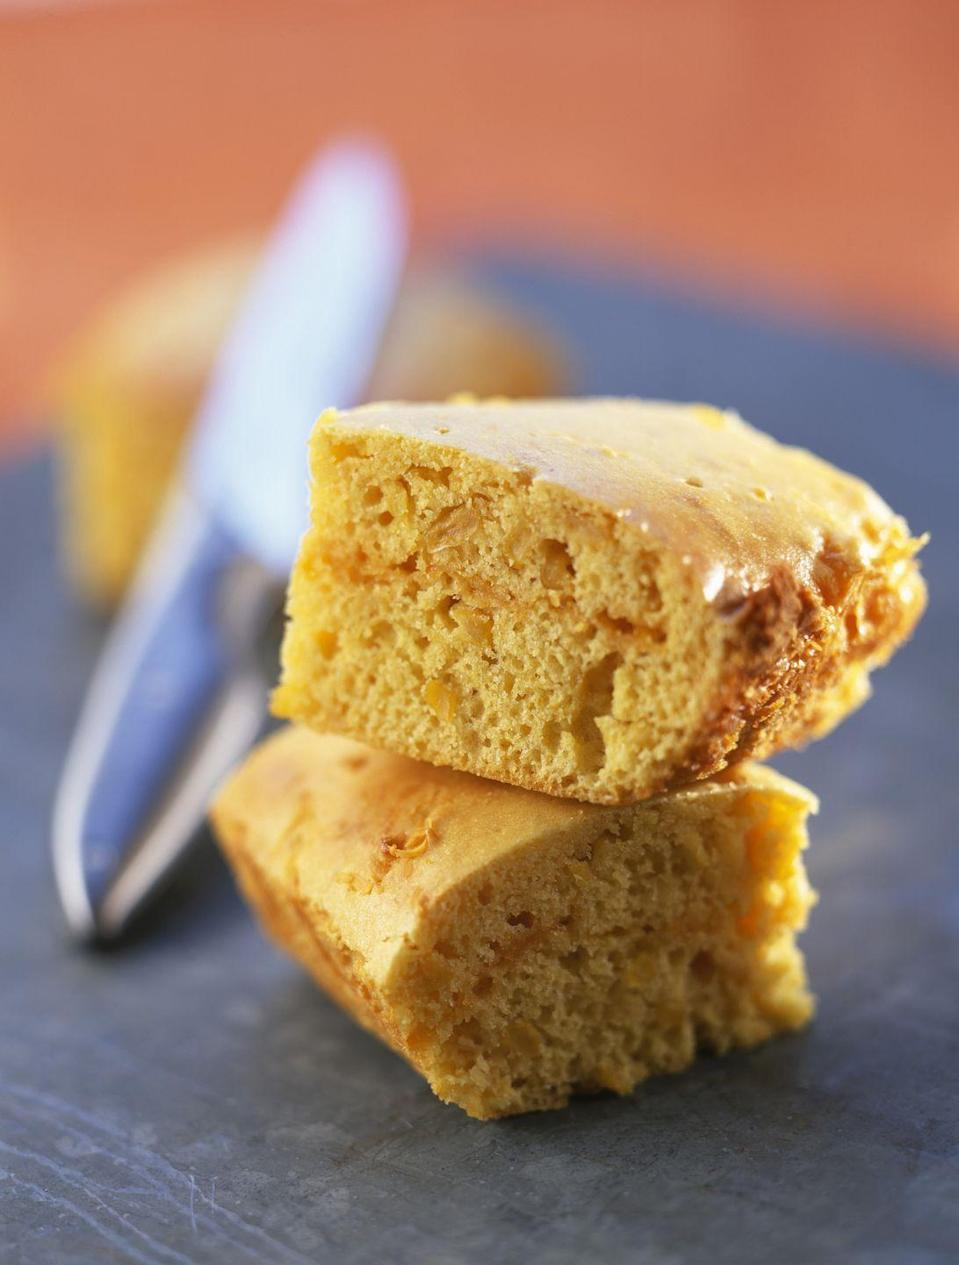 """<p>The wet and dry ingredients for this uber-quick bread can actually be mixed together in the same dish you'll use for the microwave. While you might not get the same crispy burnt edges as you'd get in a traditional oven, this cornbread is a fast dinner alongside <a href=""""https://www.goodhousekeeping.com/food-products/g32613278/best-canned-soups/"""" rel=""""nofollow noopener"""" target=""""_blank"""" data-ylk=""""slk:your favorite canned or bottled soup"""" class=""""link rapid-noclick-resp"""">your favorite canned or bottled soup</a> on cooler nights.</p><p><em><a href=""""https://www.womansday.com/food-recipes/a46858/8-minute-microwave-cornbread/"""" rel=""""nofollow noopener"""" target=""""_blank"""" data-ylk=""""slk:Get the recipe from Woman's Day »"""" class=""""link rapid-noclick-resp"""">Get the recipe from Woman's Day »</a></em></p><p><strong>RELATED: </strong><a href=""""https://www.goodhousekeeping.com/food-recipes/g32071475/bread-machine-recipes/"""" rel=""""nofollow noopener"""" target=""""_blank"""" data-ylk=""""slk:25 Best Bread Machines Recipes That Make Home Baking a Breeze"""" class=""""link rapid-noclick-resp"""">25 Best Bread Machines Recipes That Make Home Baking a Breeze</a></p>"""